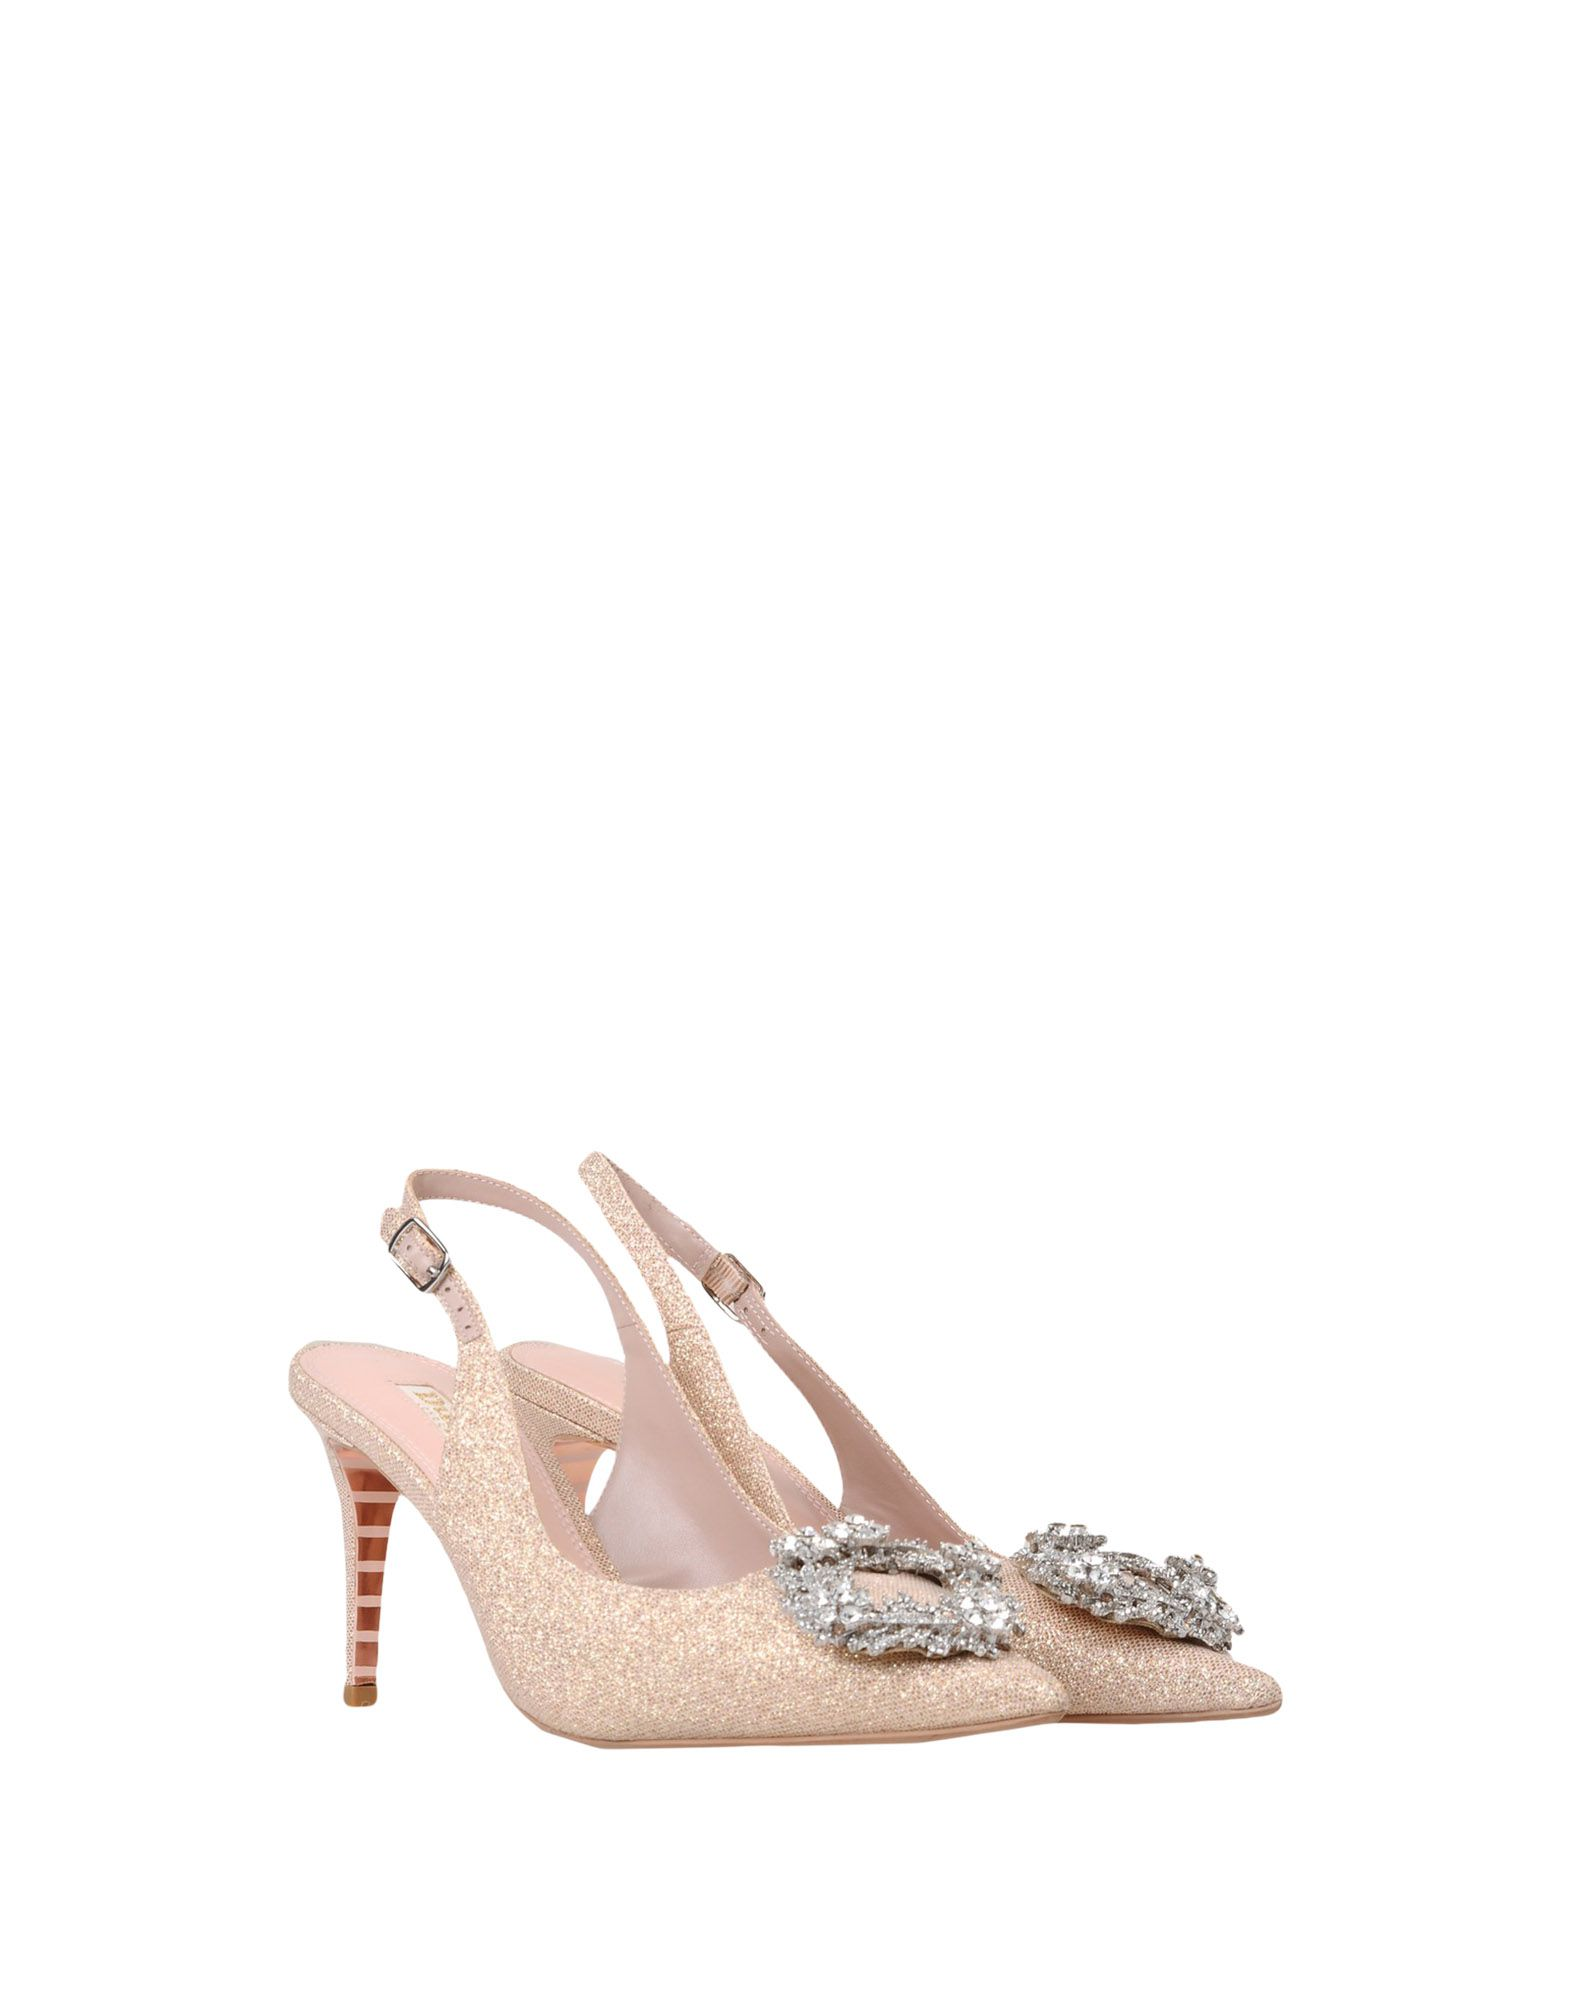 Escarpins Dune London Bayley - Femme - Escarpins Dune London sur